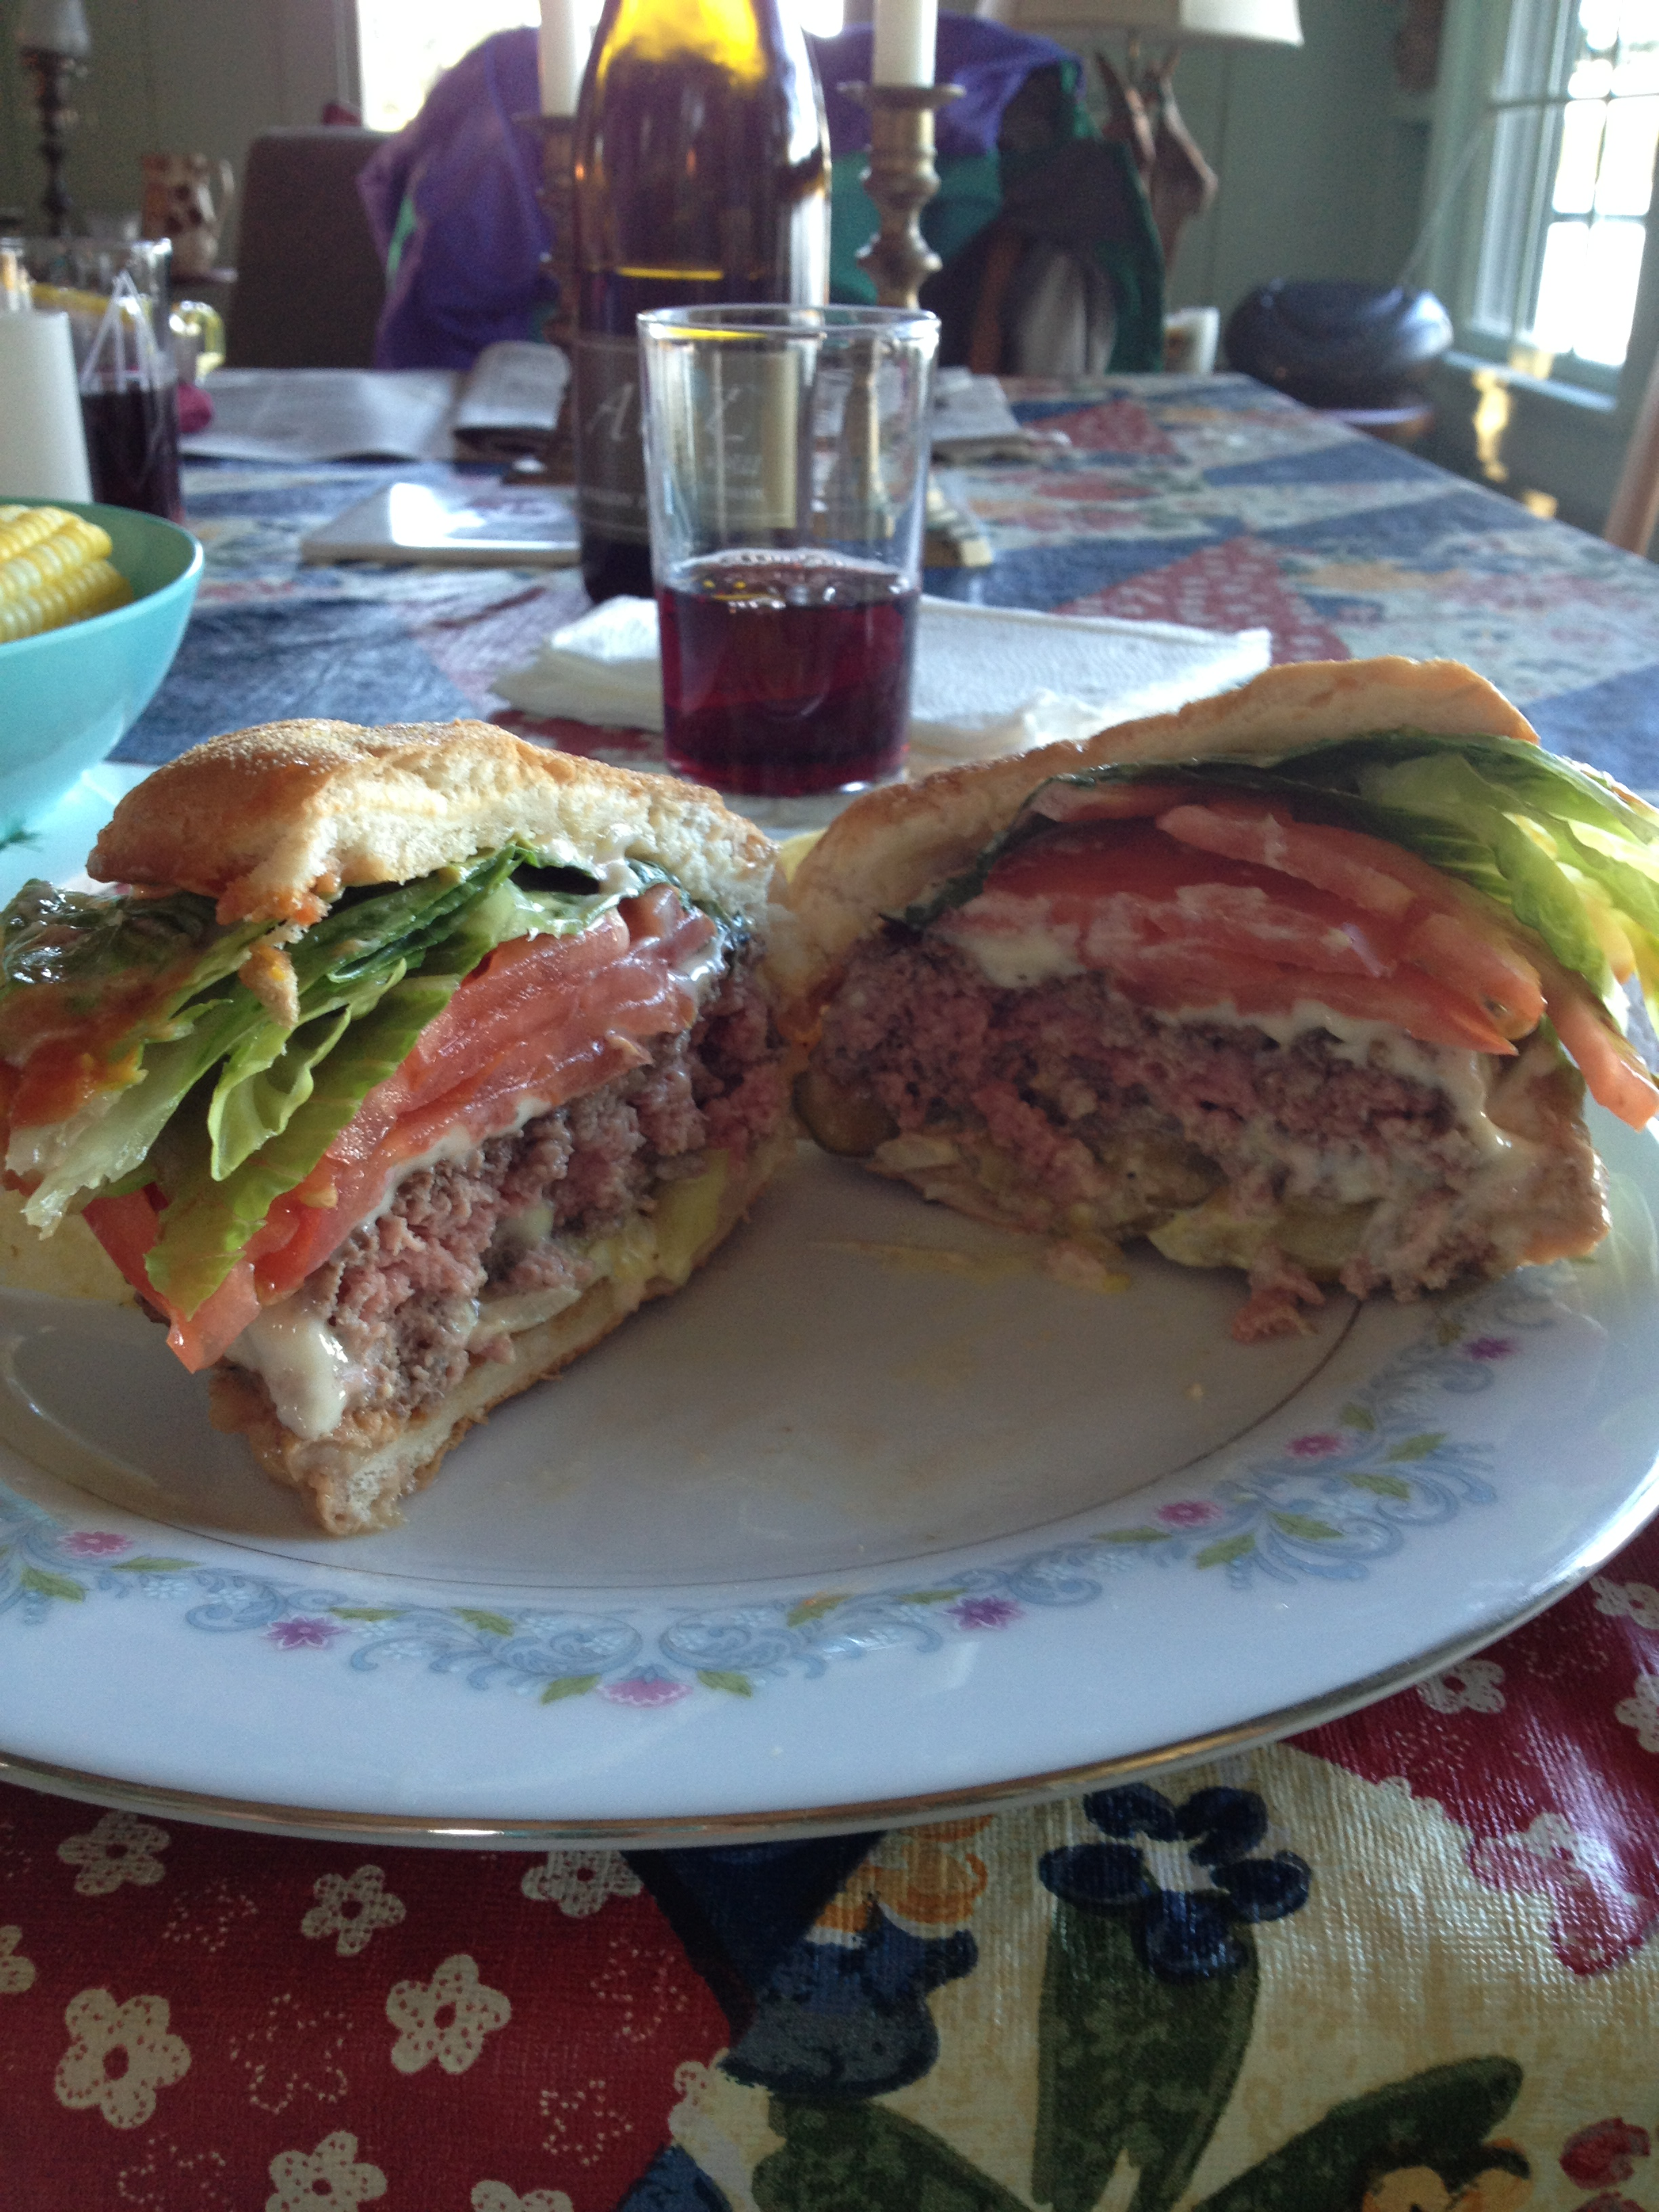 The Seven Napkin Burger from the Owl's Head, ME General Store